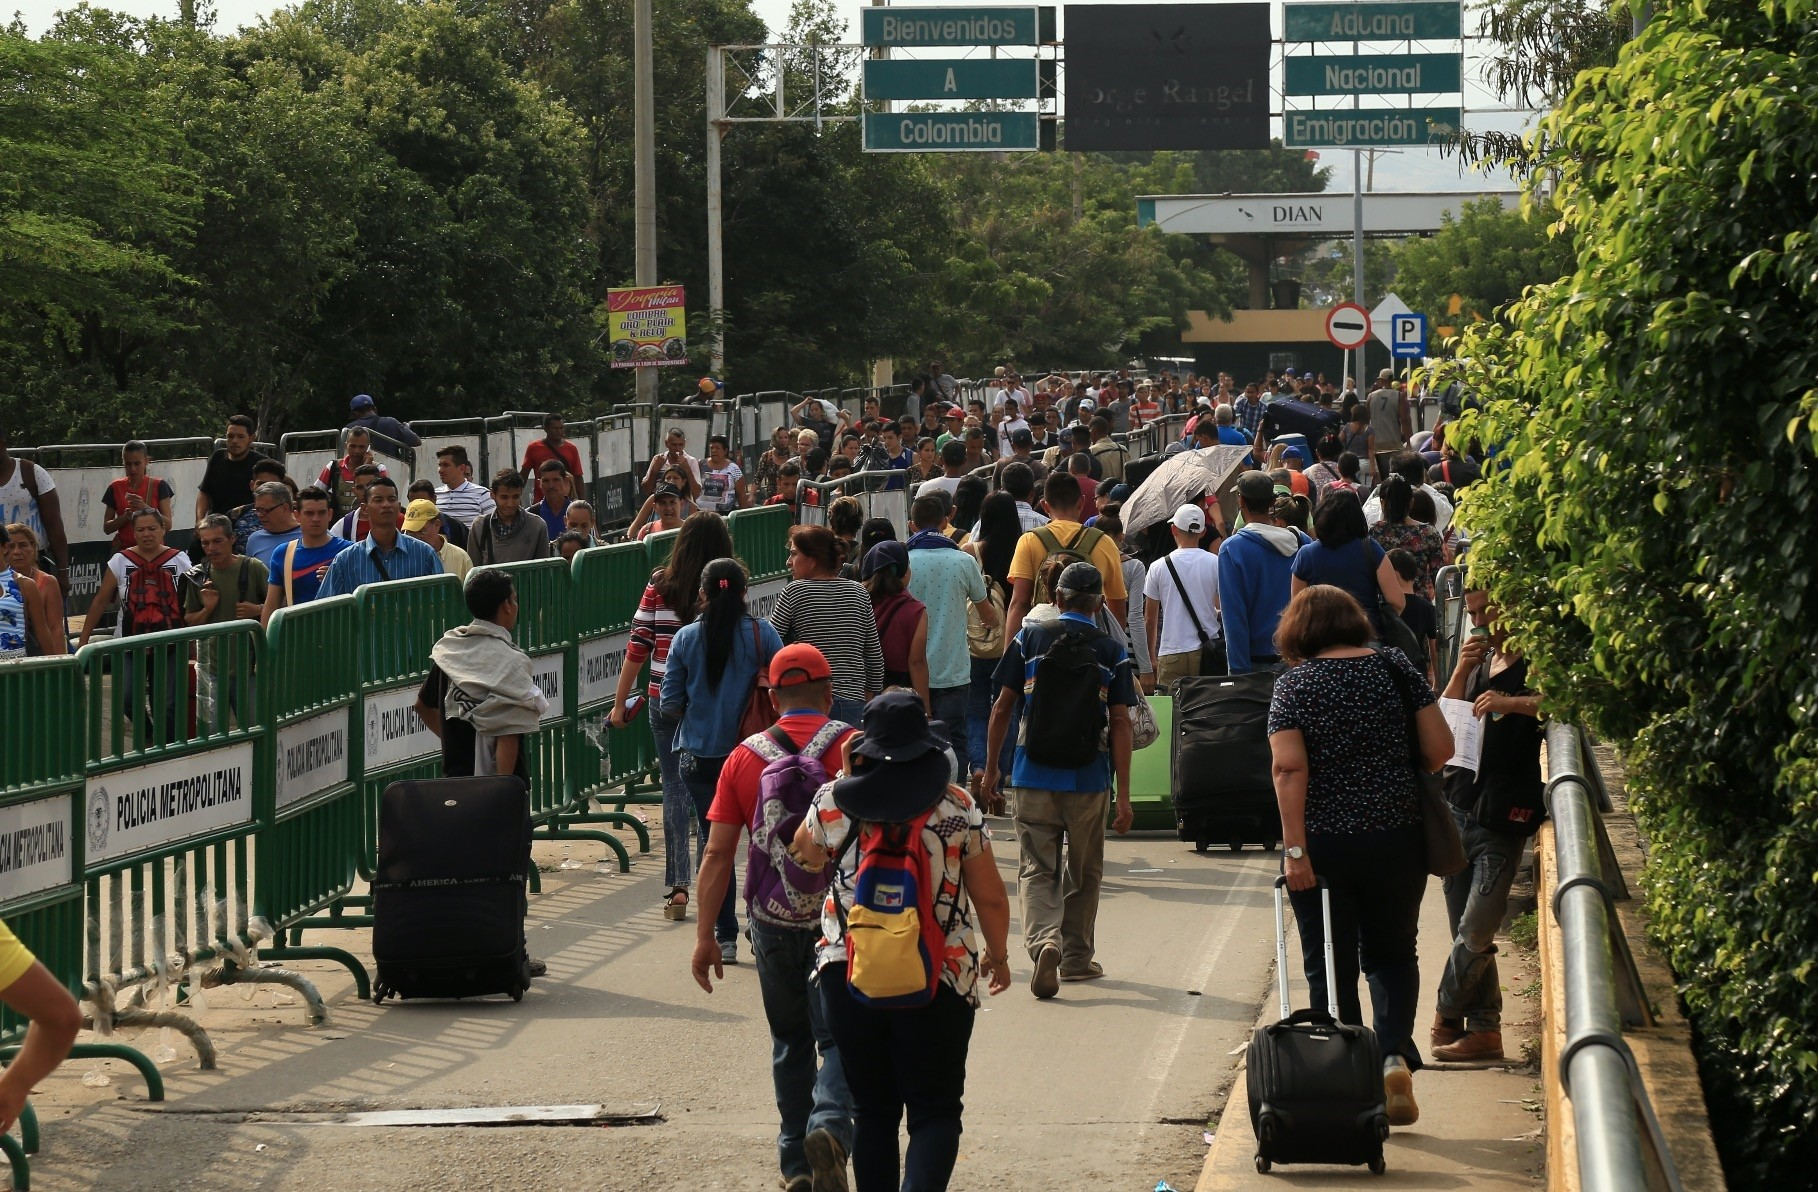 Venezuelan refugees cross Simon Bolivar bridge connecting Colombia and Venezuela. Colombia has seen a surge in number of refugees in the second half of 2017.